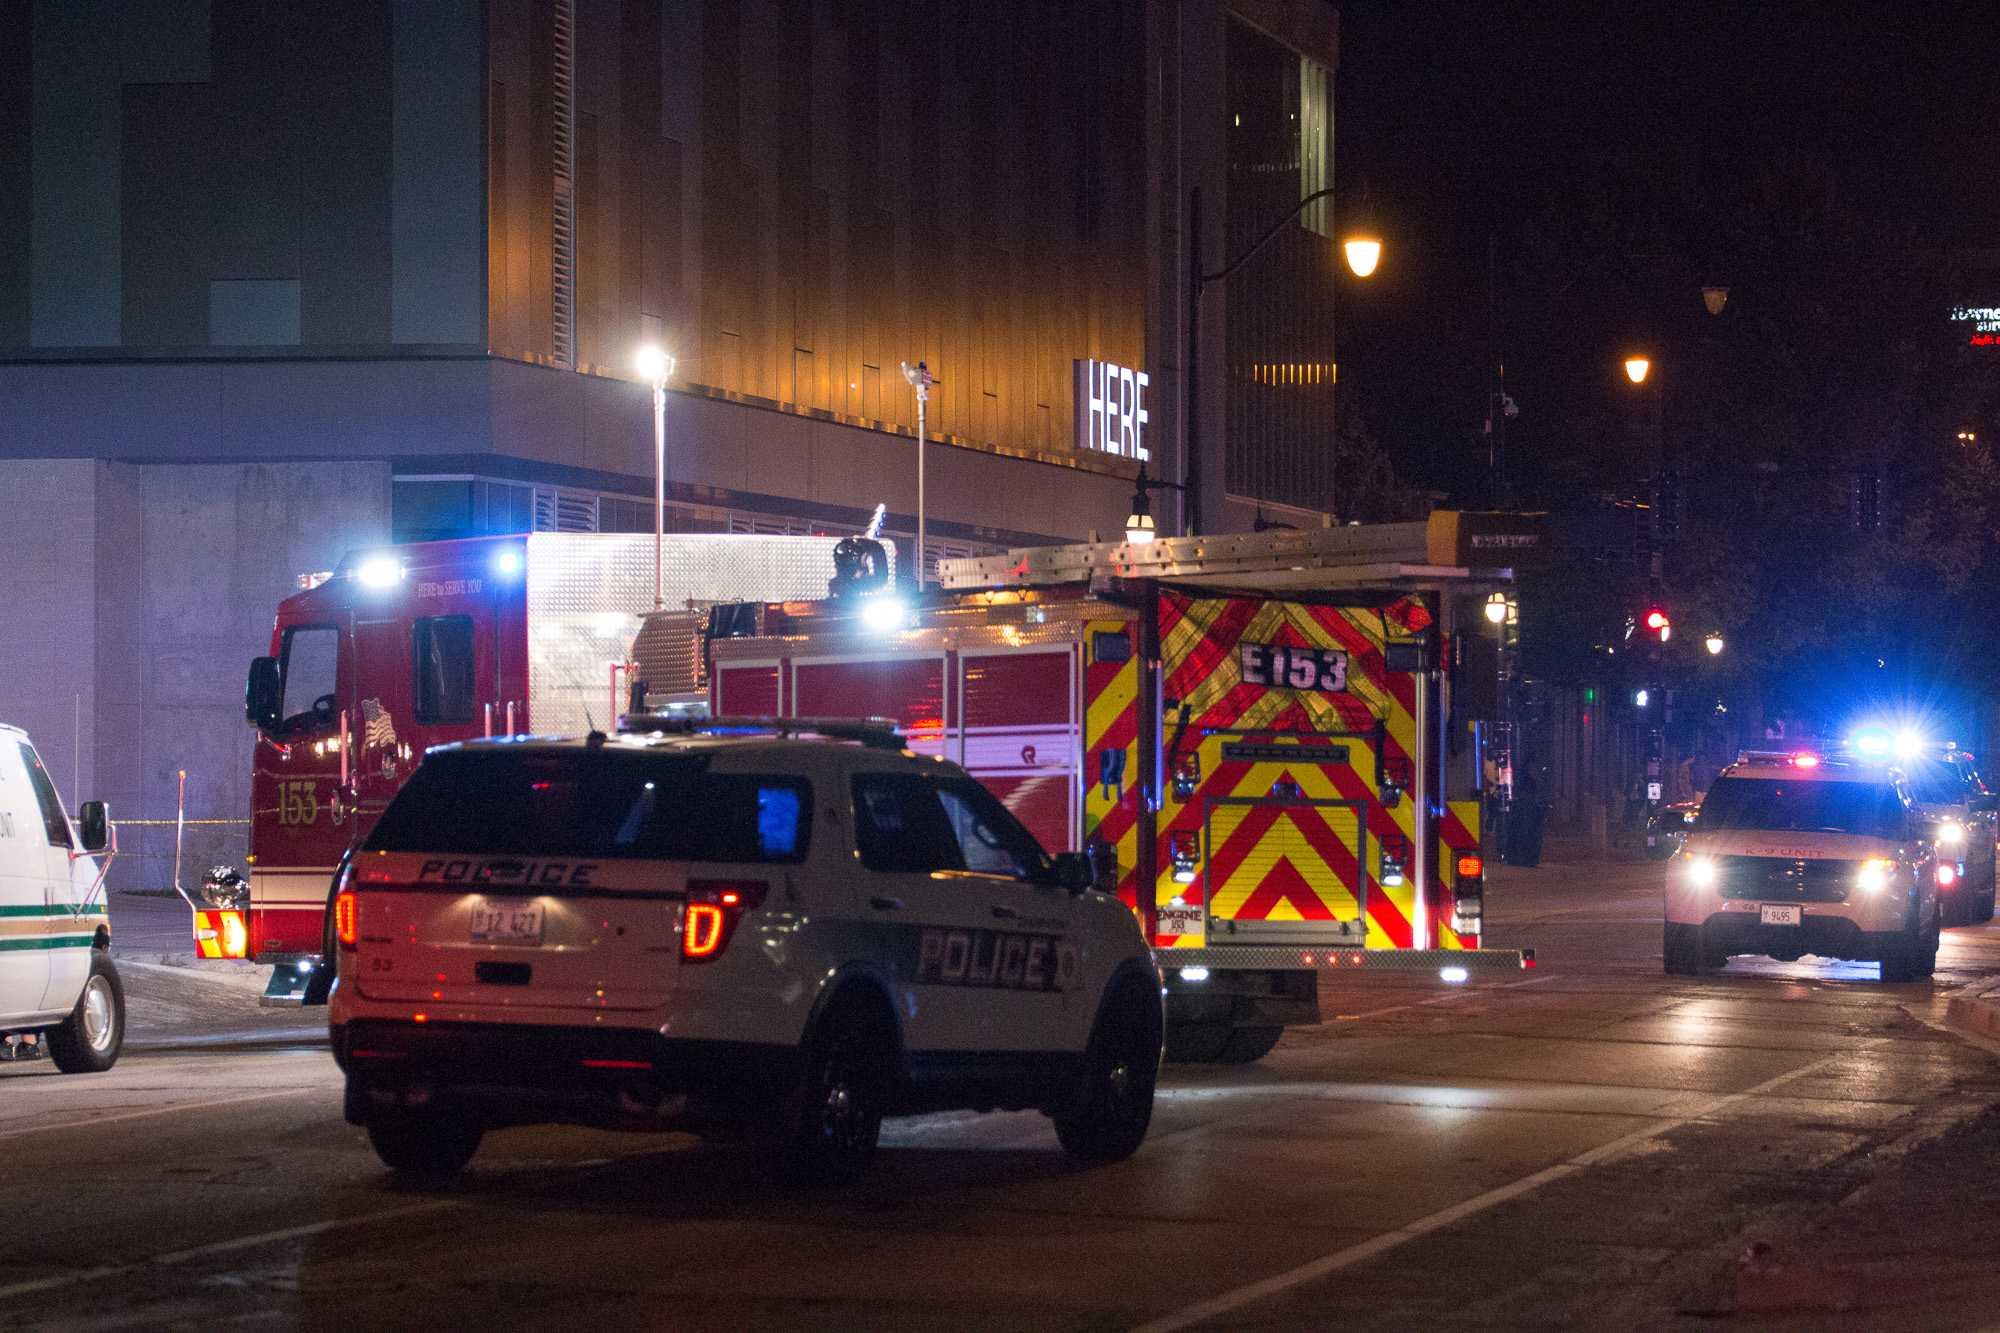 Police cars and a fire truck are parked outside the Here apartment building in the 300 block of Green Street after a shooting that took place early Sunday morning.